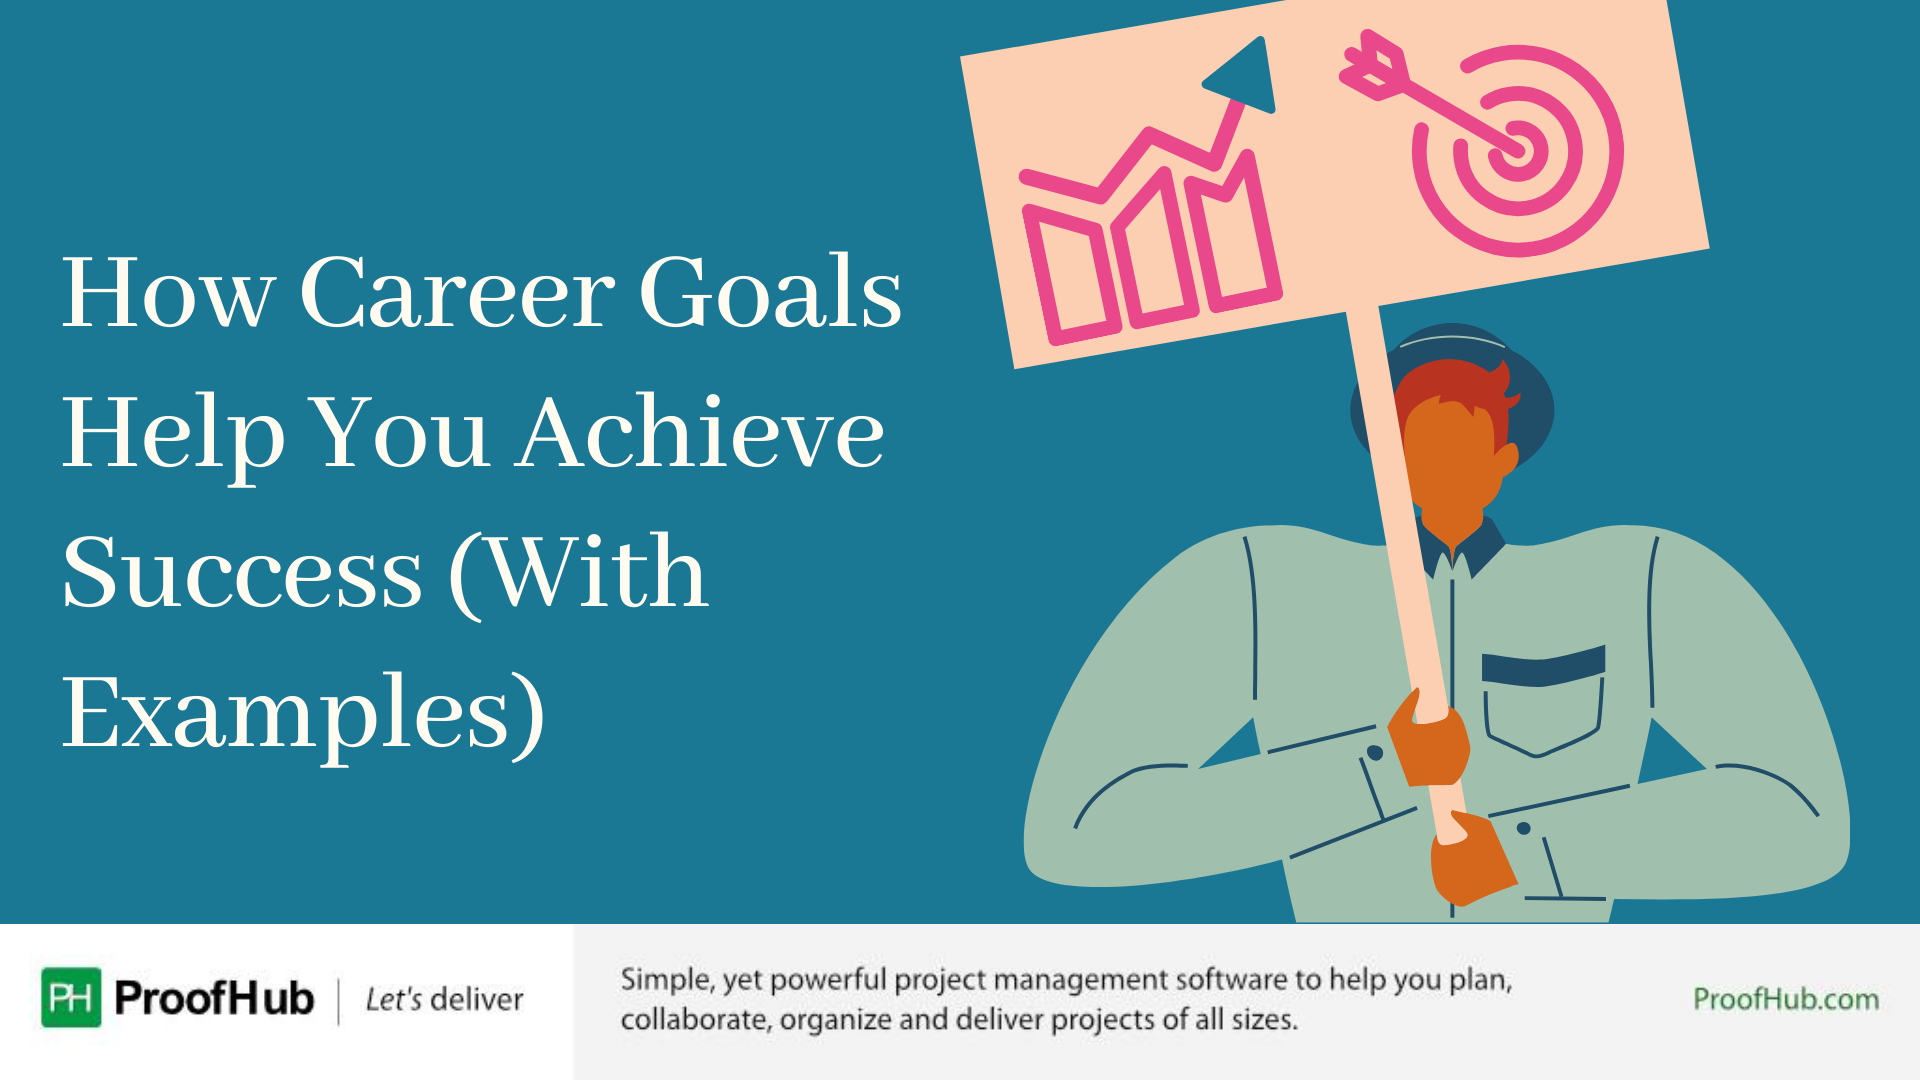 How Career Goals Help You Achieve Success (With Examples)